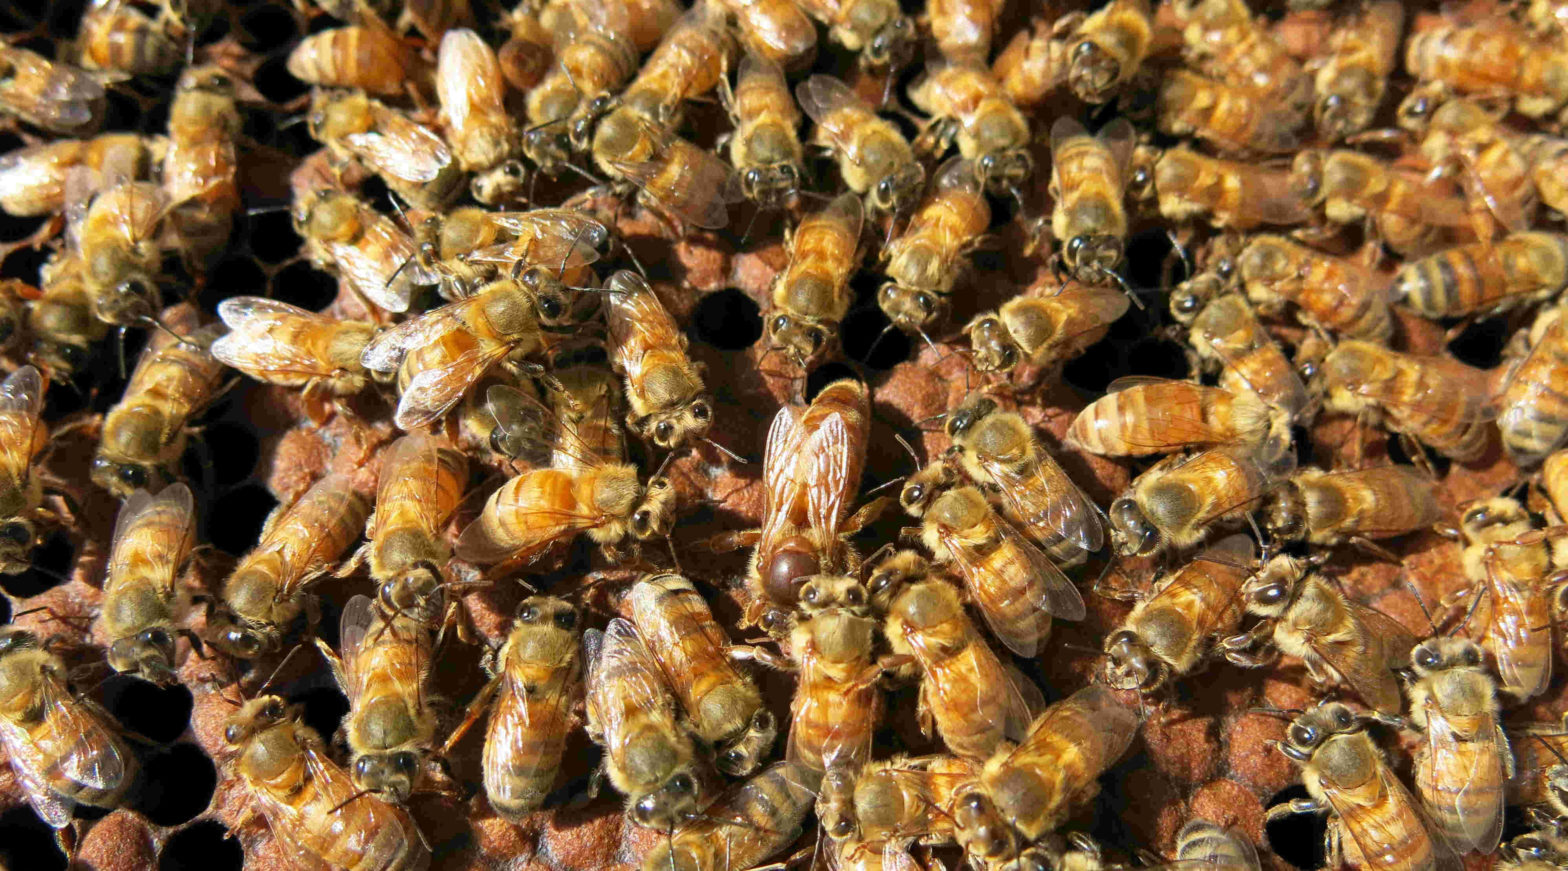 Superorganism, welfare, honey bee colony